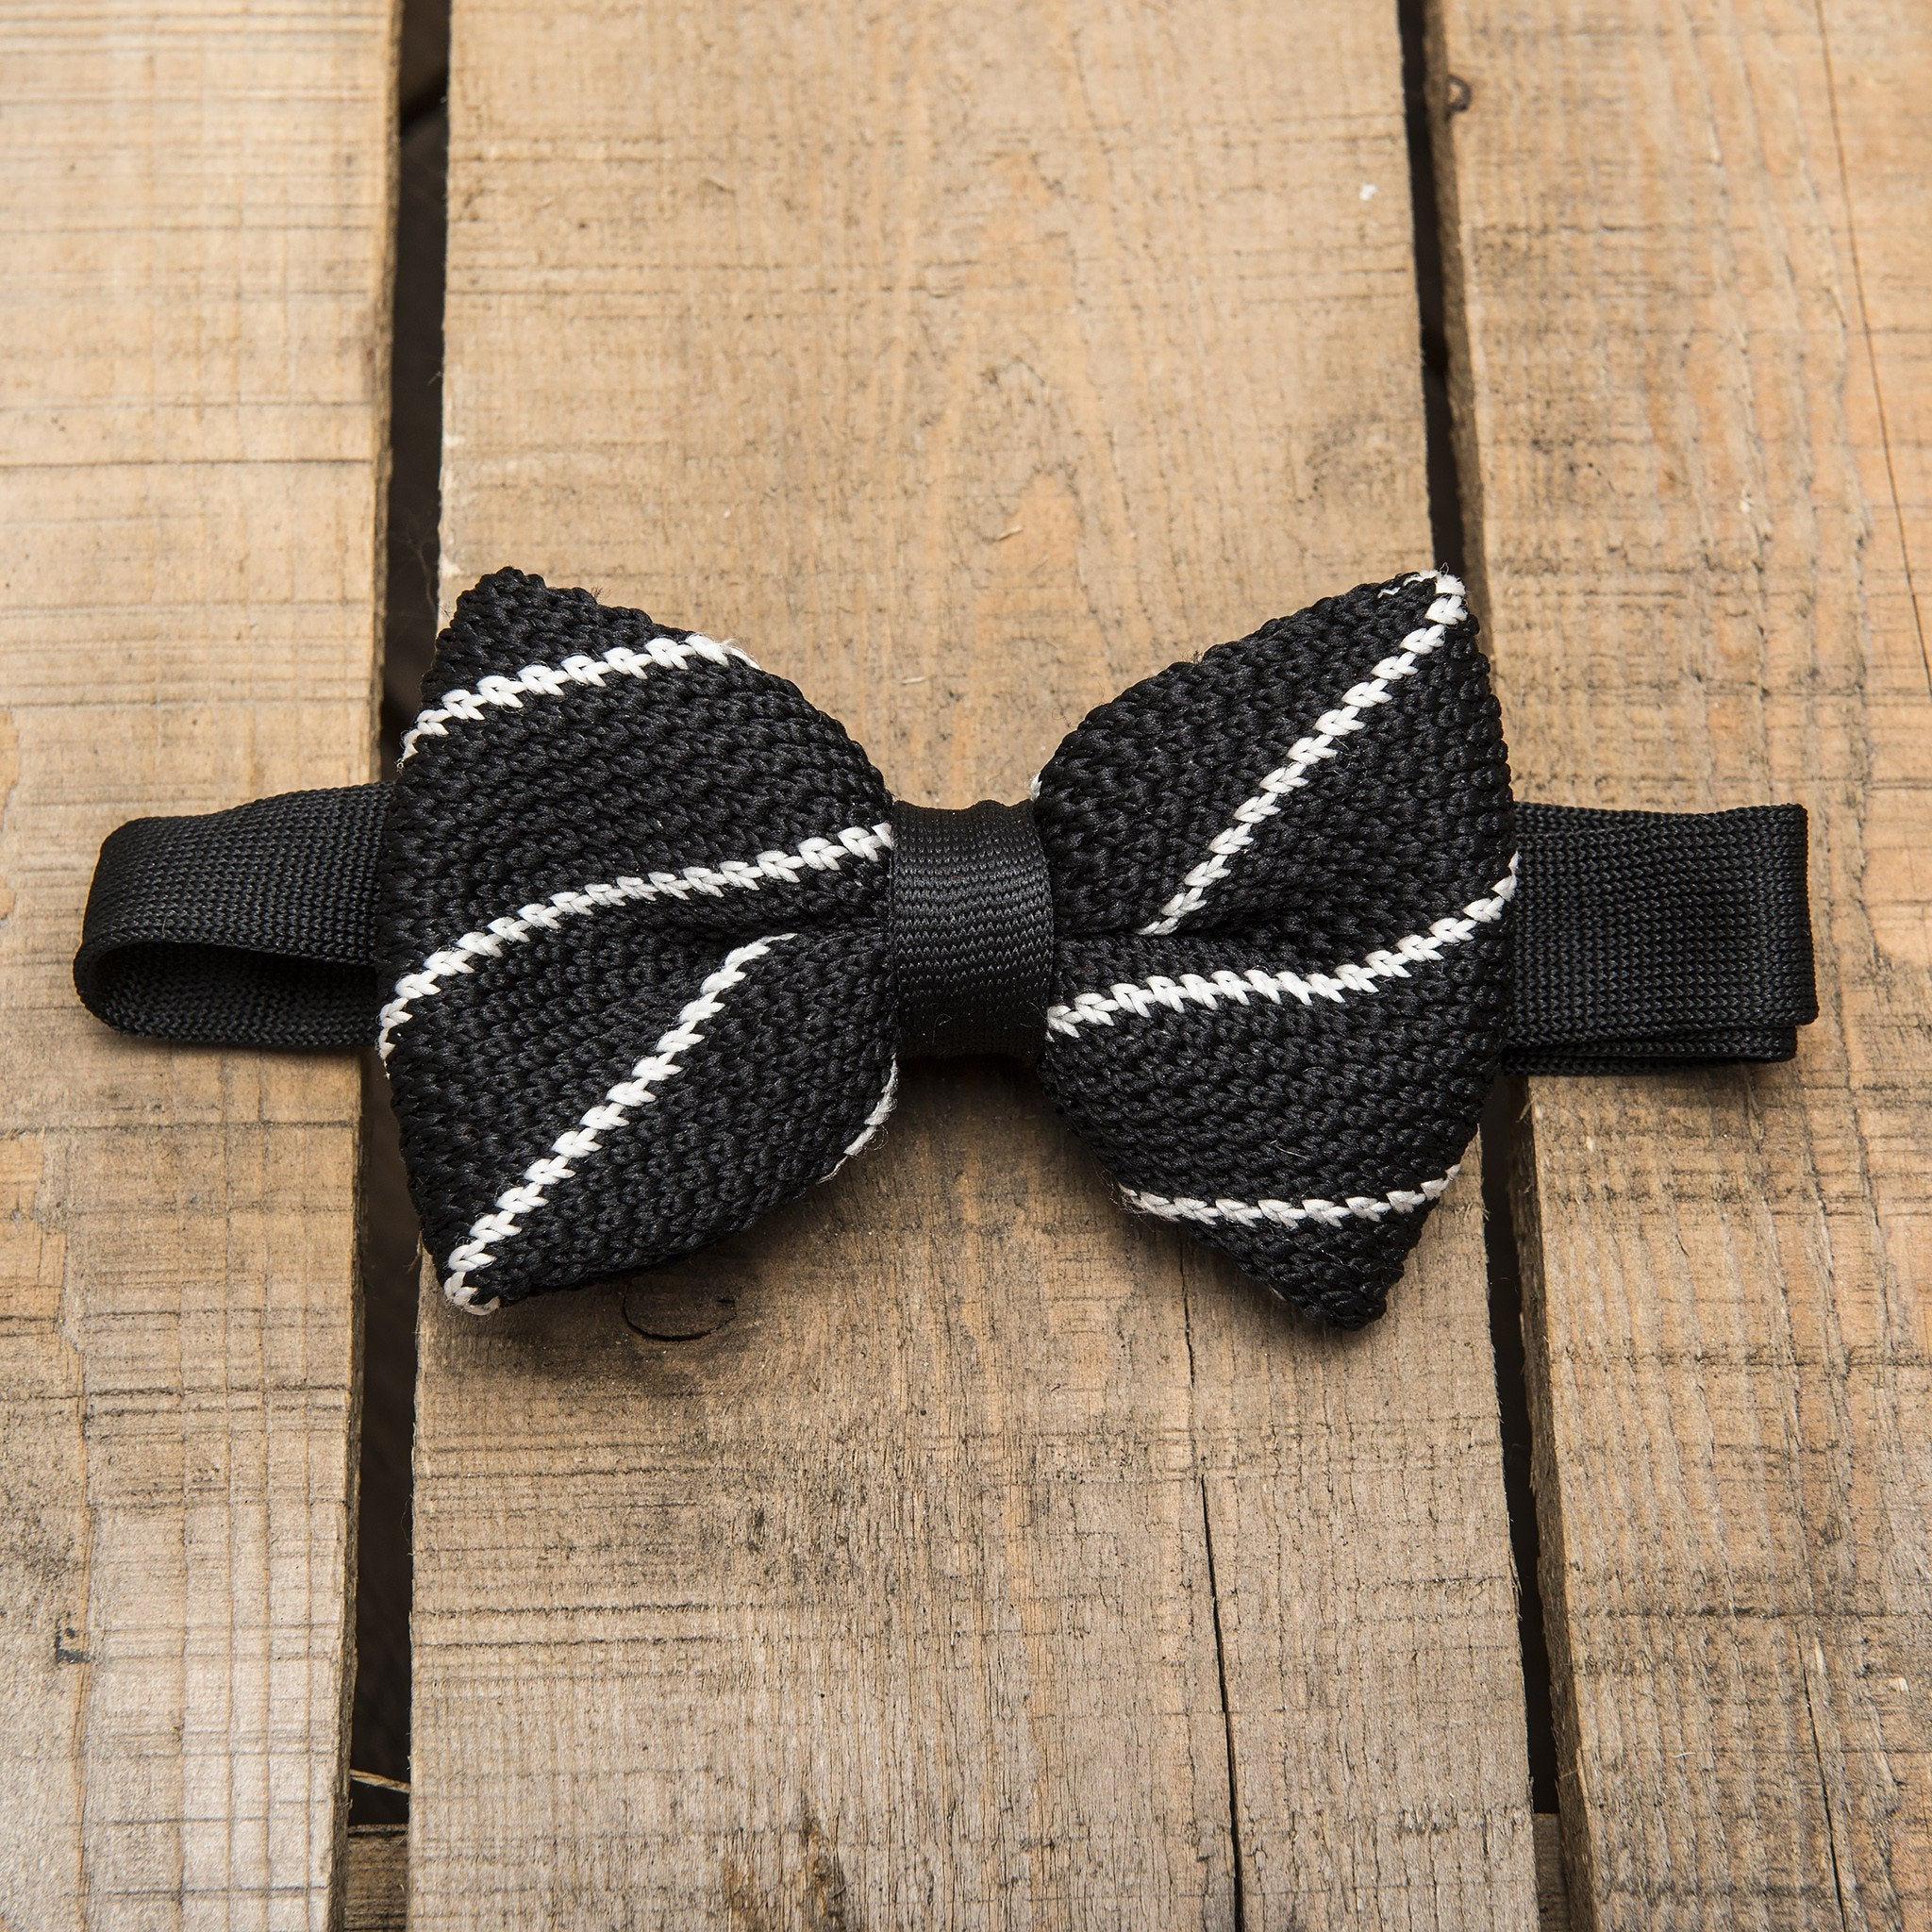 Black and White Stripe Knitted Bow Tie - Tuxedo